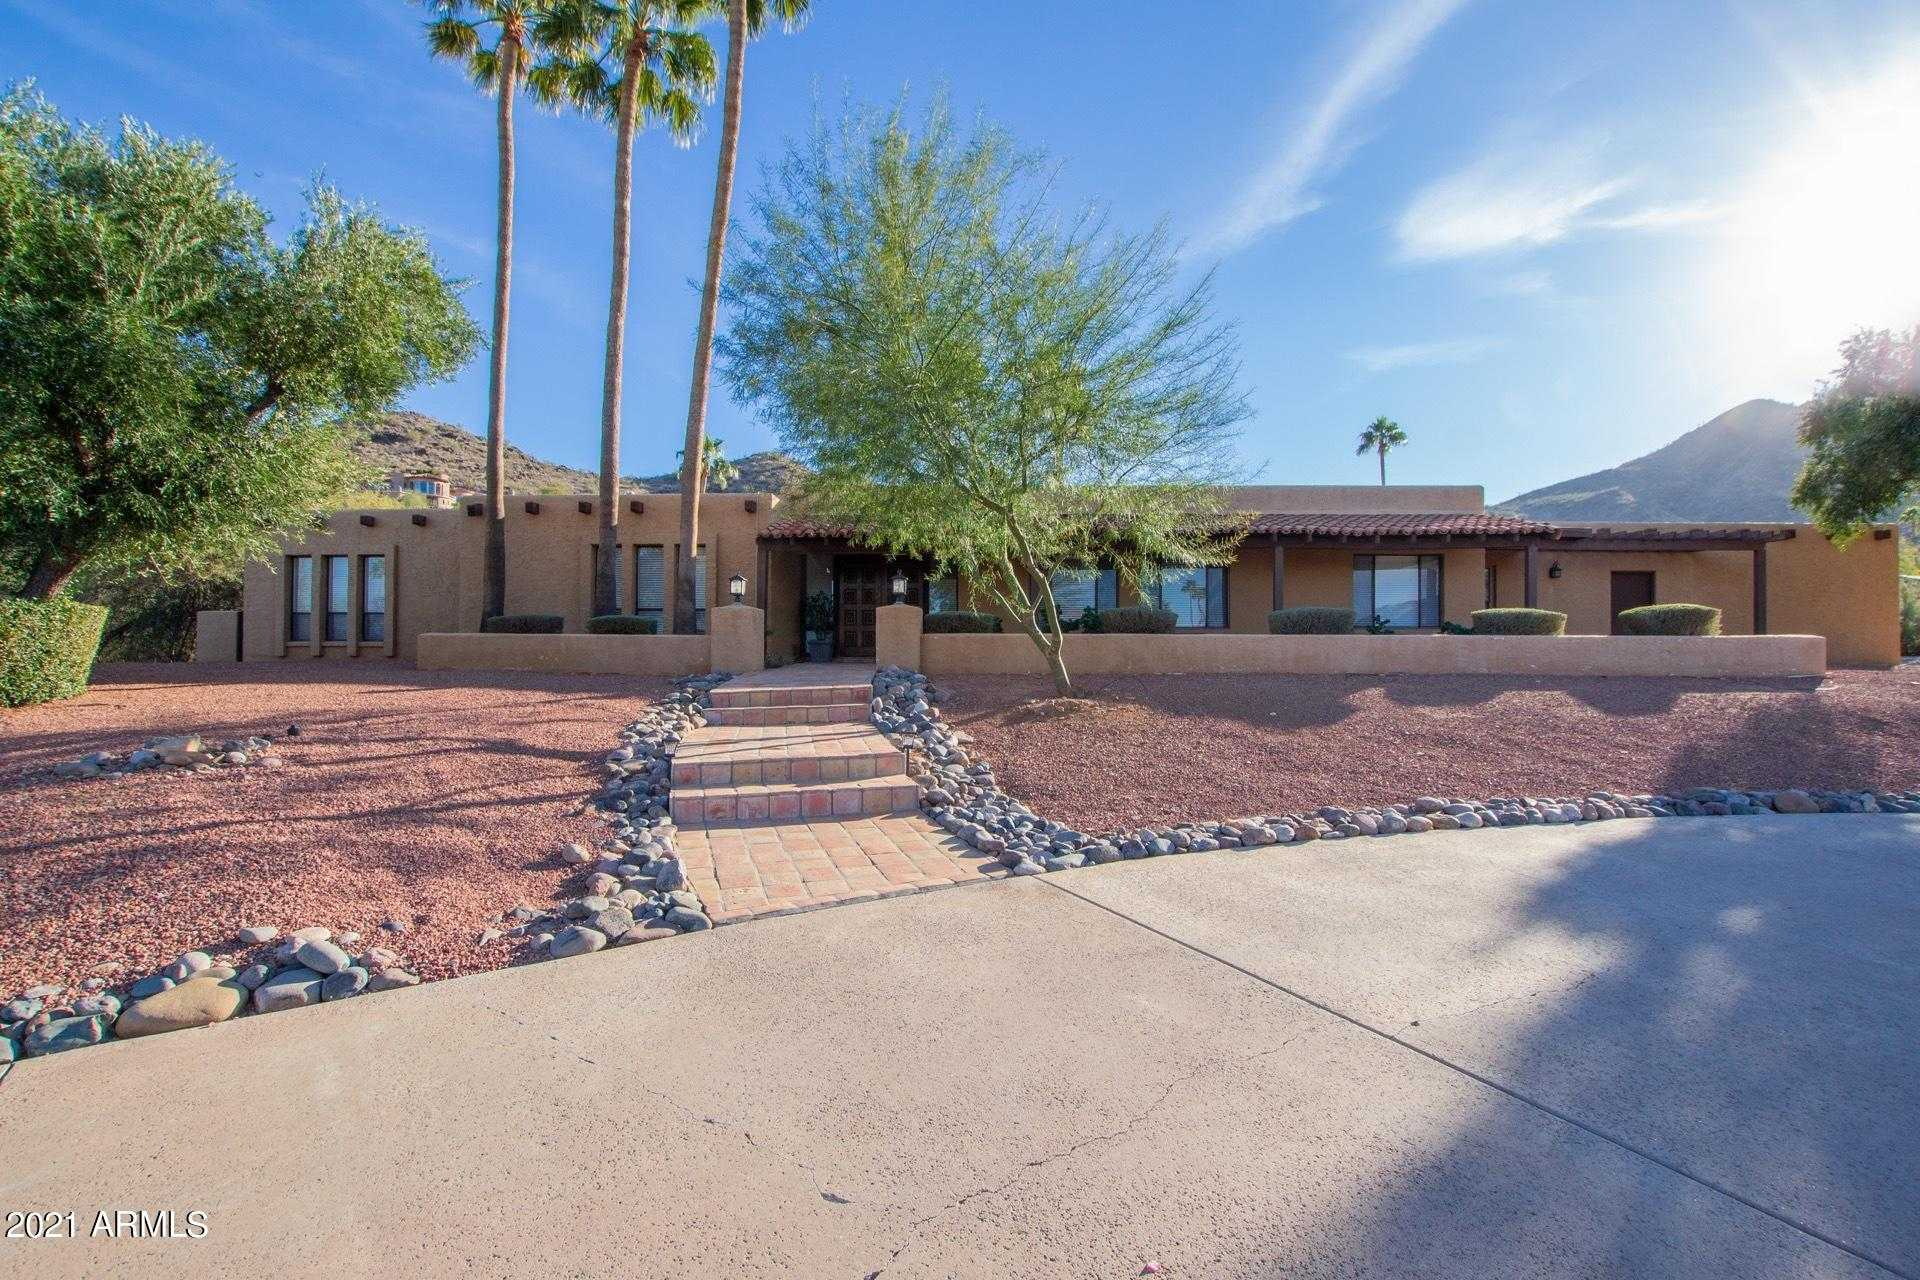 $1,650,000 - 4Br/3Ba - Home for Sale in Sunset Hills Lot 21-37 & Tr A, B, Paradise Valley